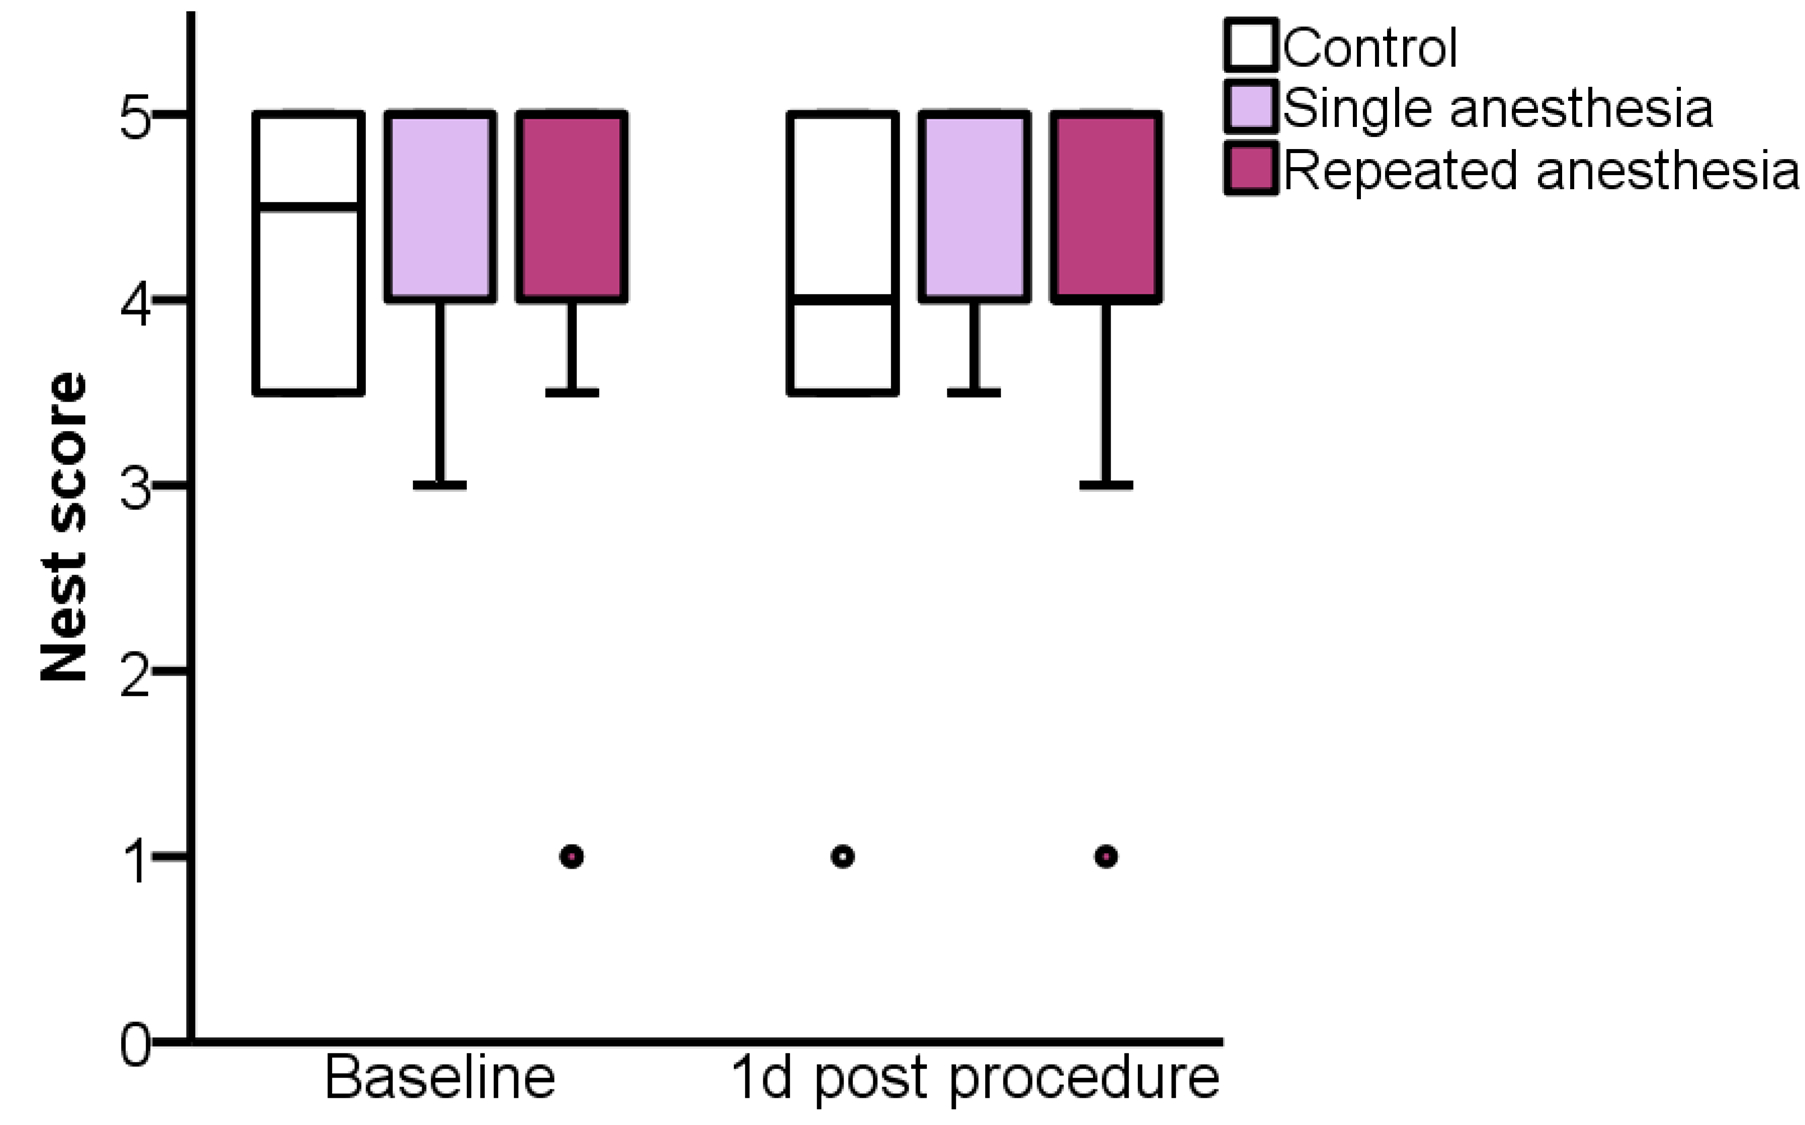 Punkte Diät Tabelle Kostenlos Systematic Assessment Of Well Being In Mice For Procedures